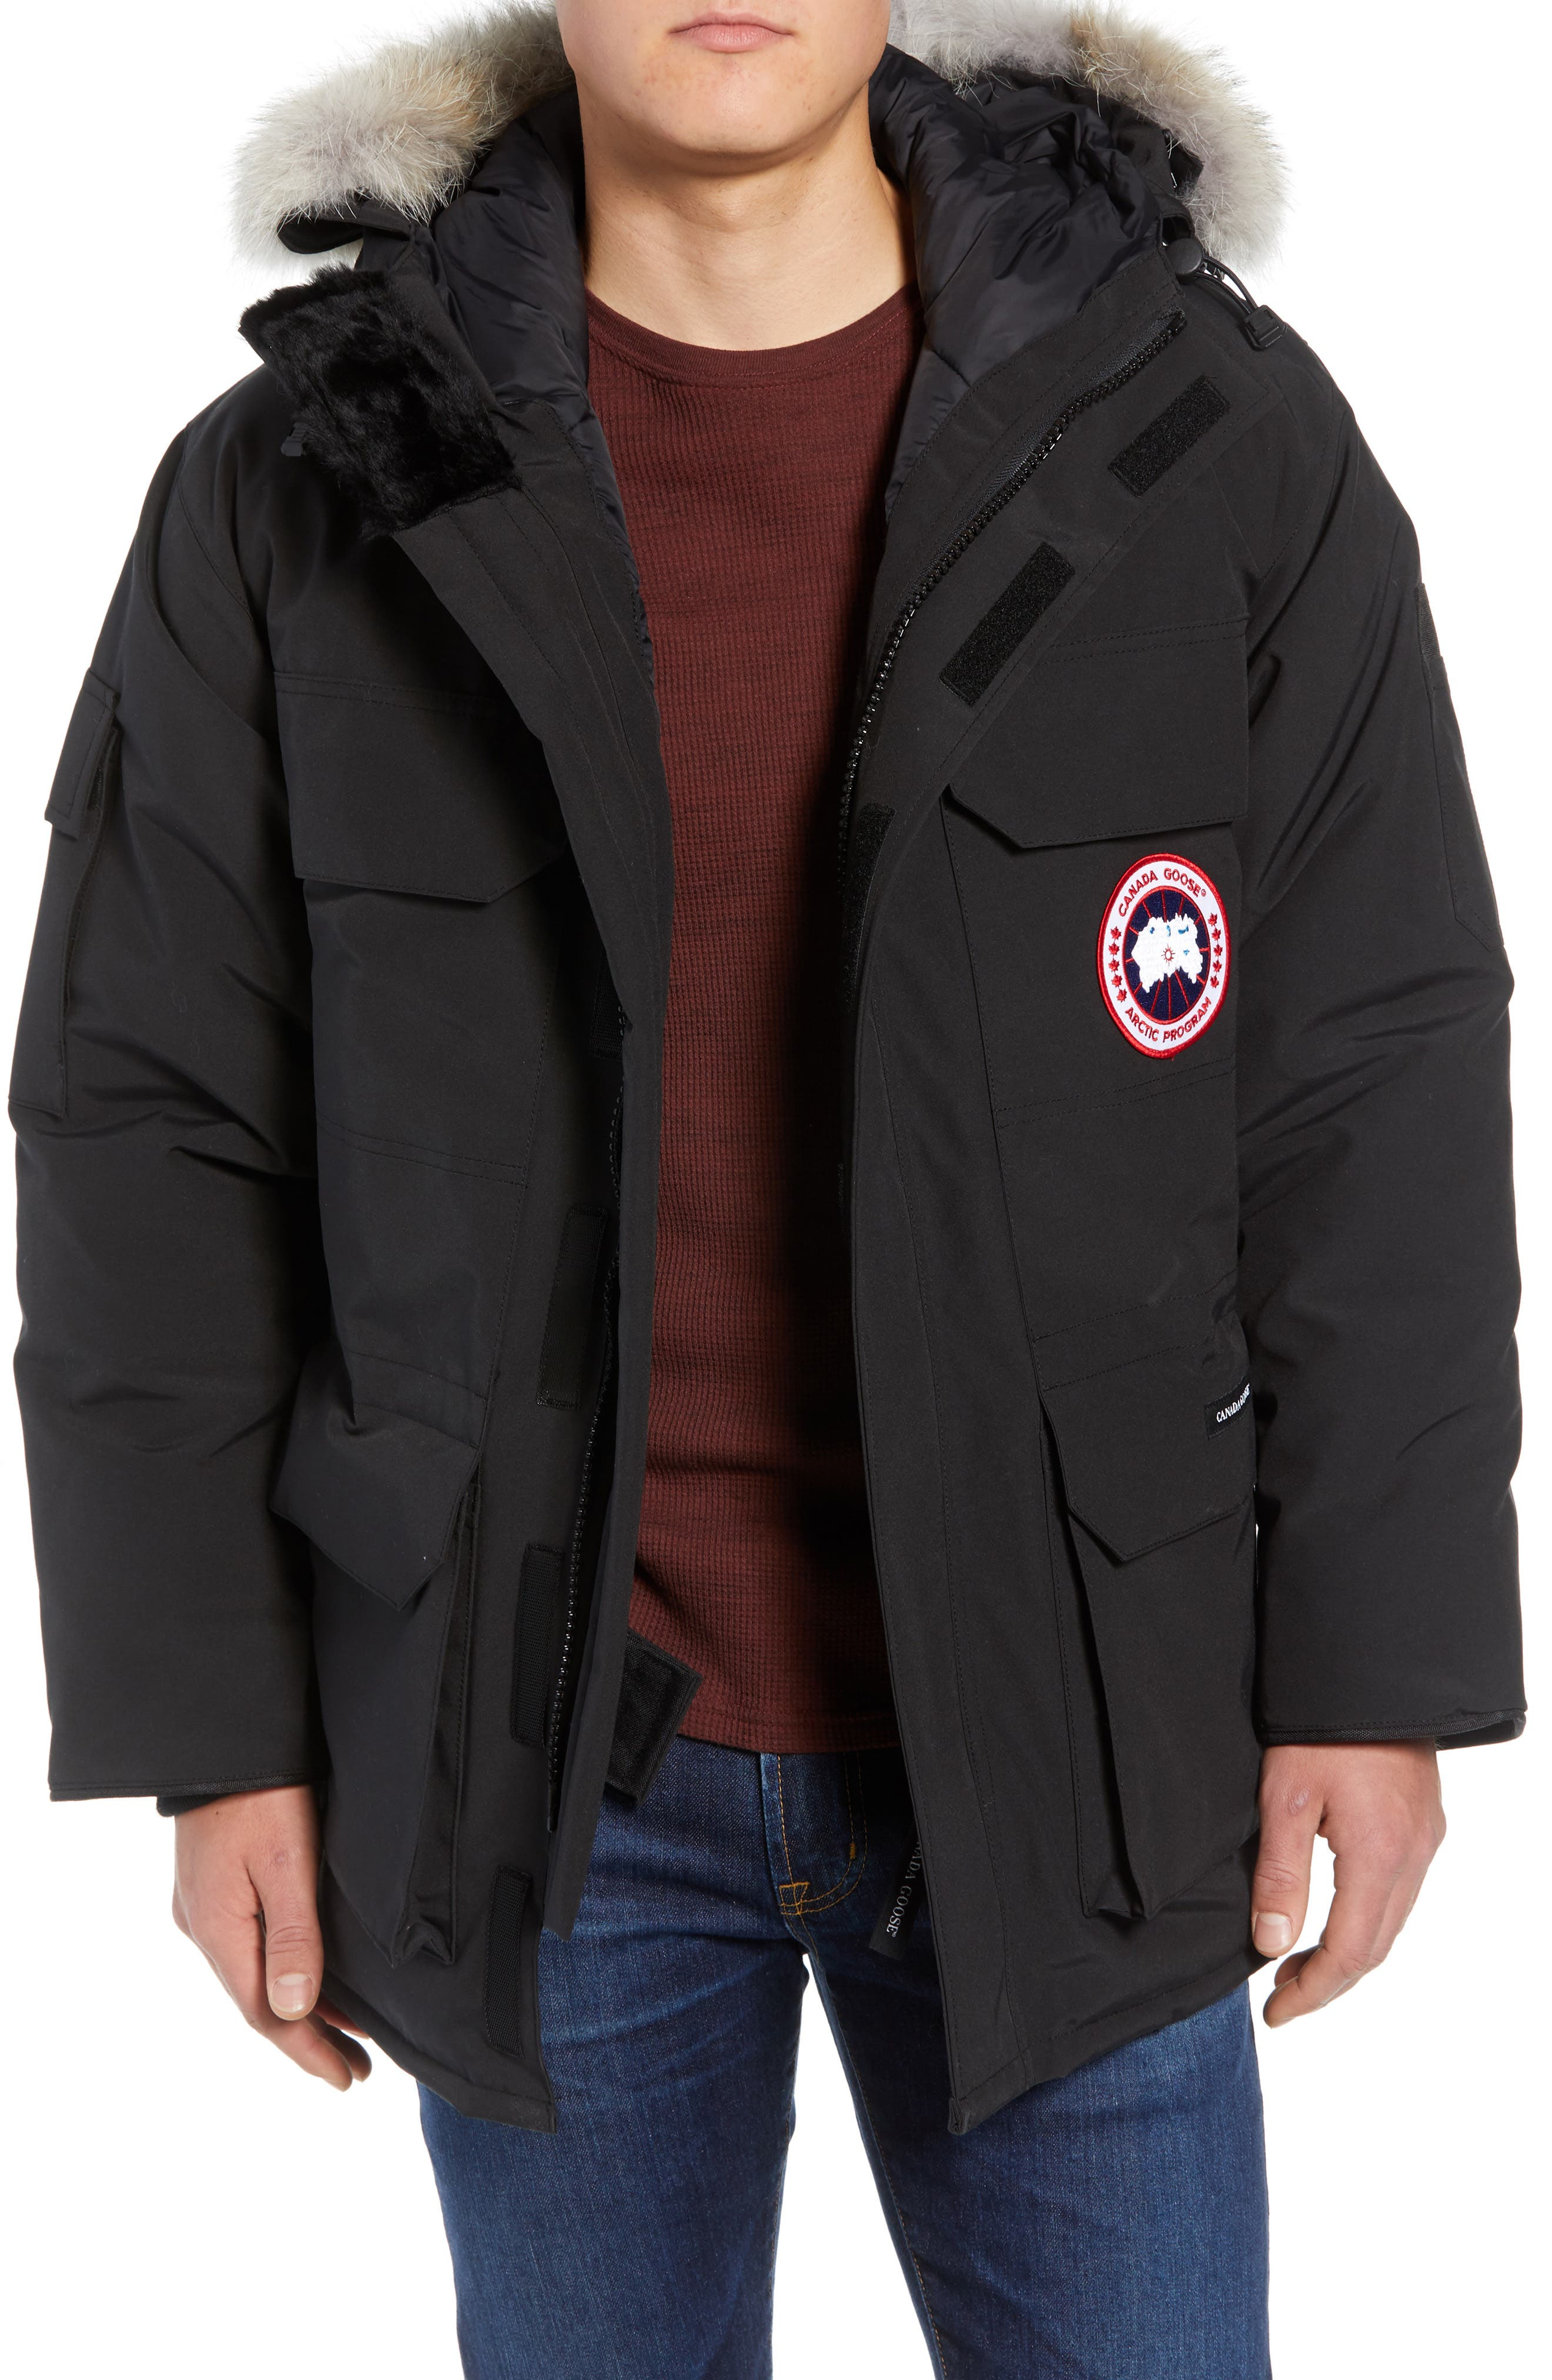 CANADA GOOSE, PBI Expedition Regular Fit Down Parka with Genuine Coyote Fur Trim, Main thumbnail 1, color, BLACK